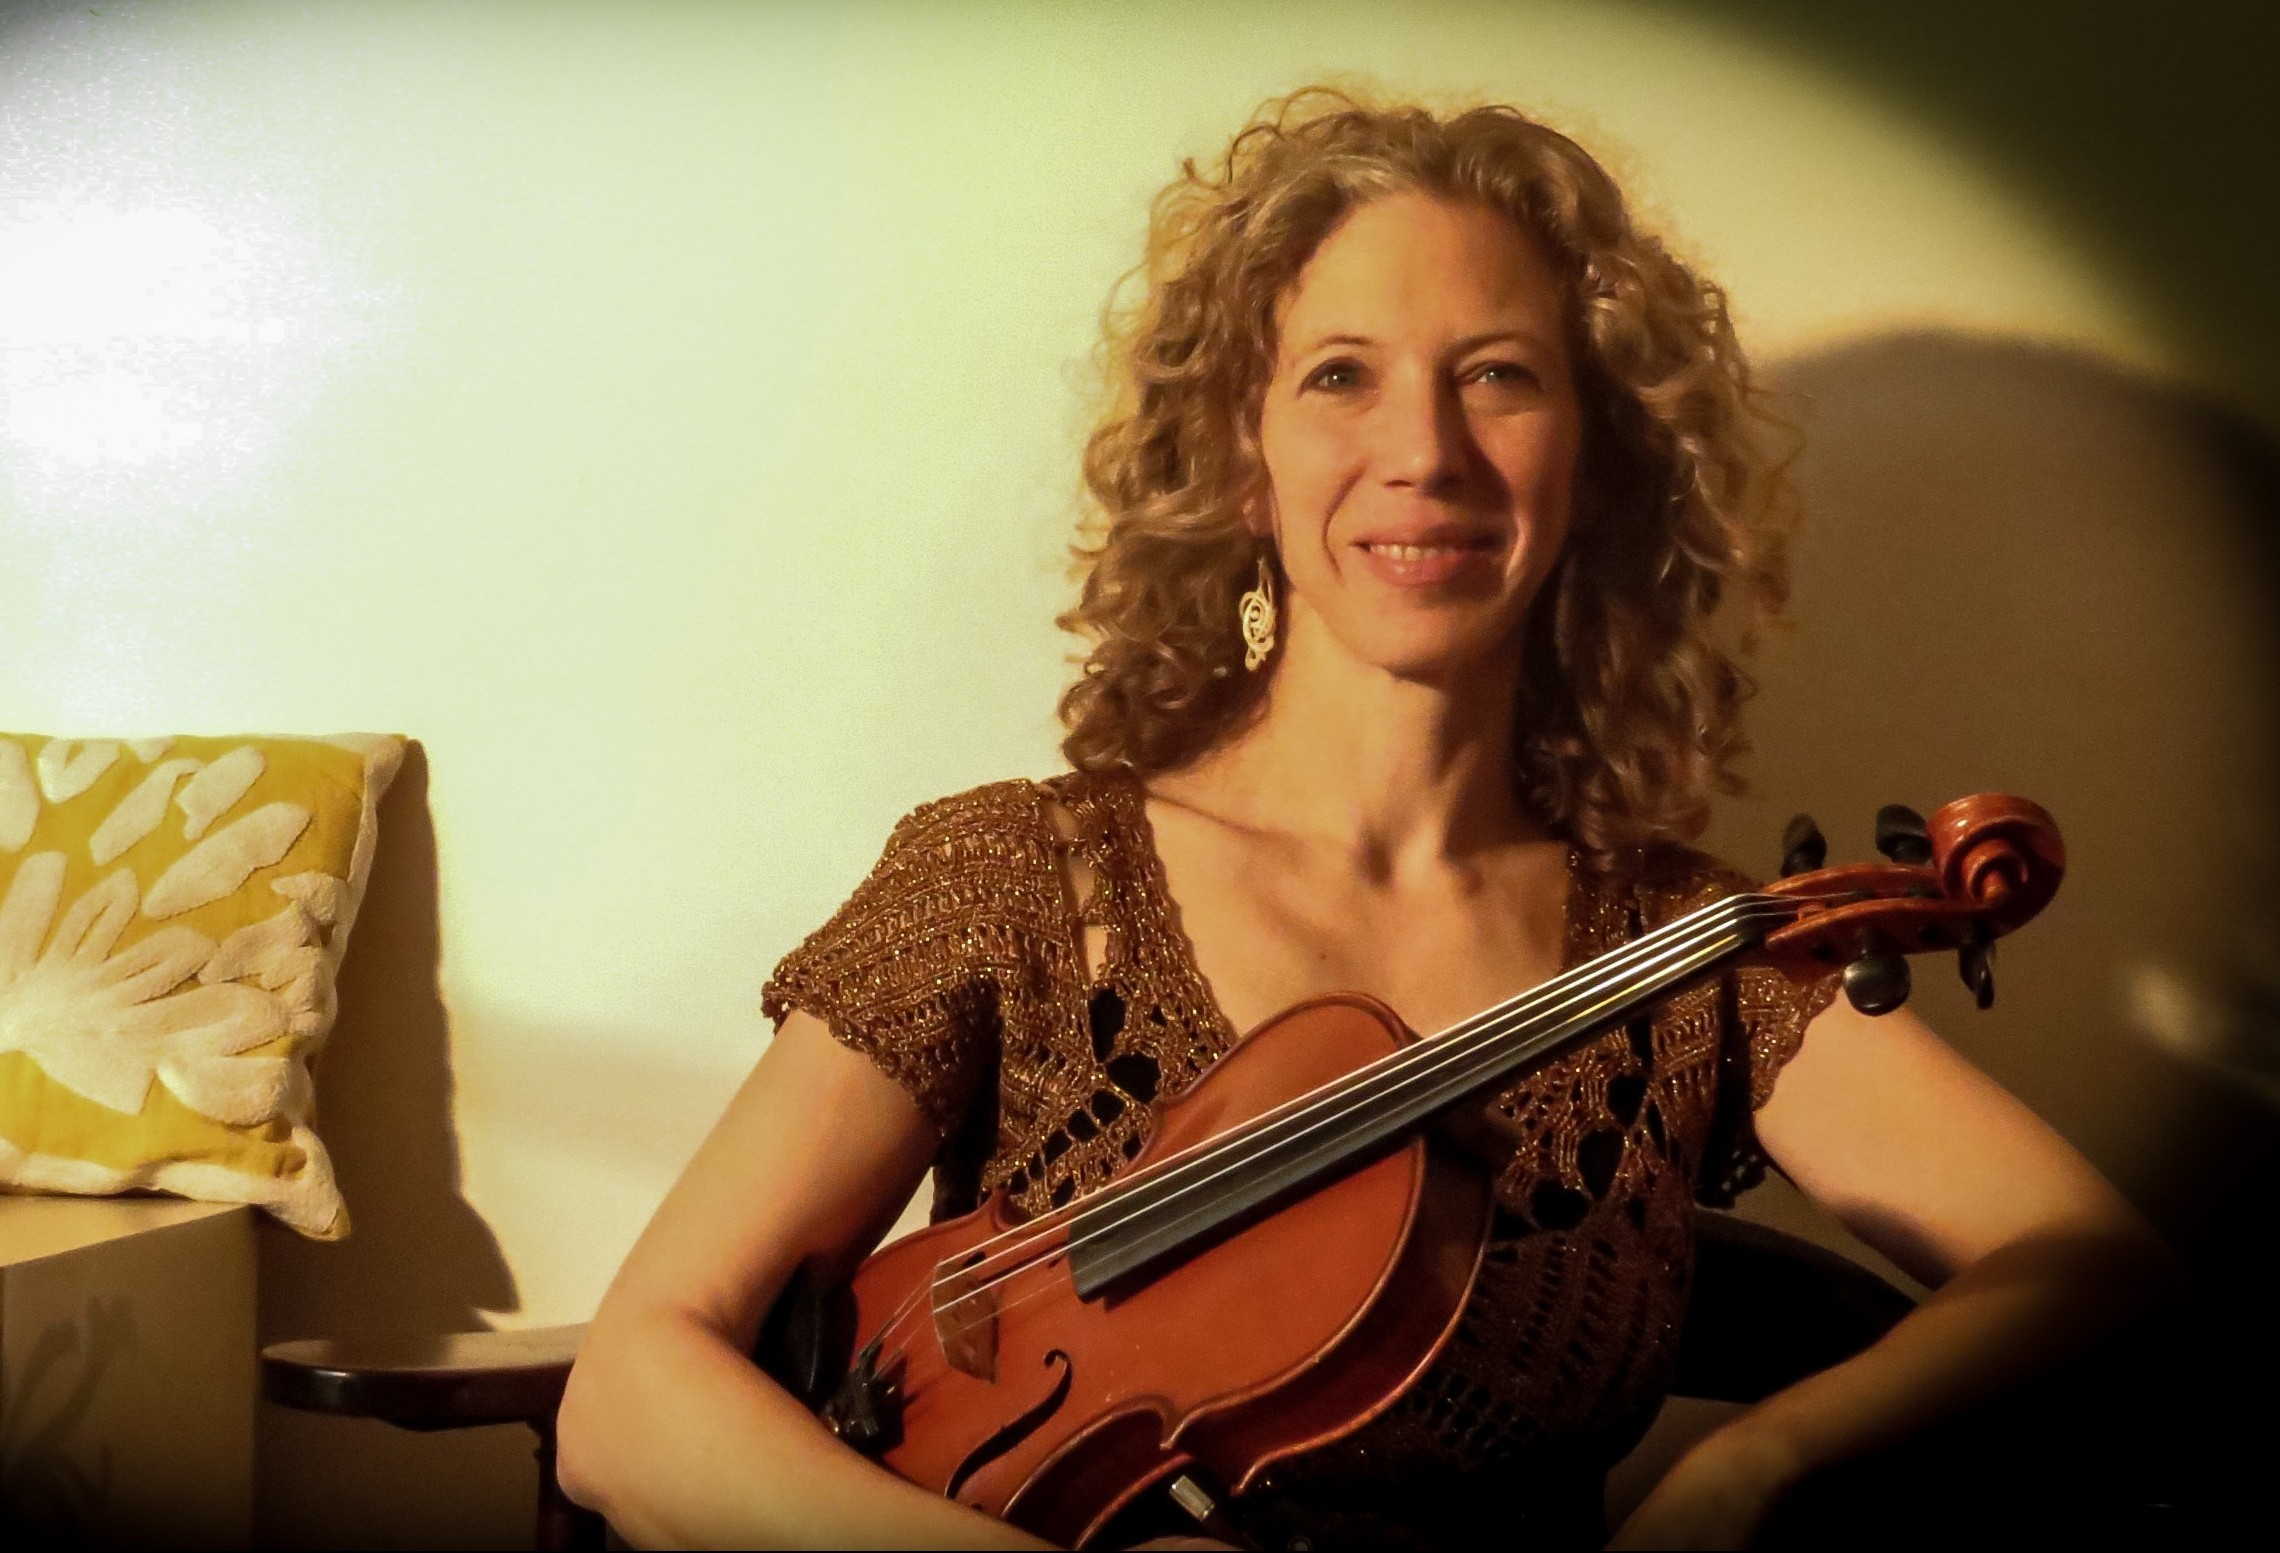 Learn more about Susanna Klein, violin